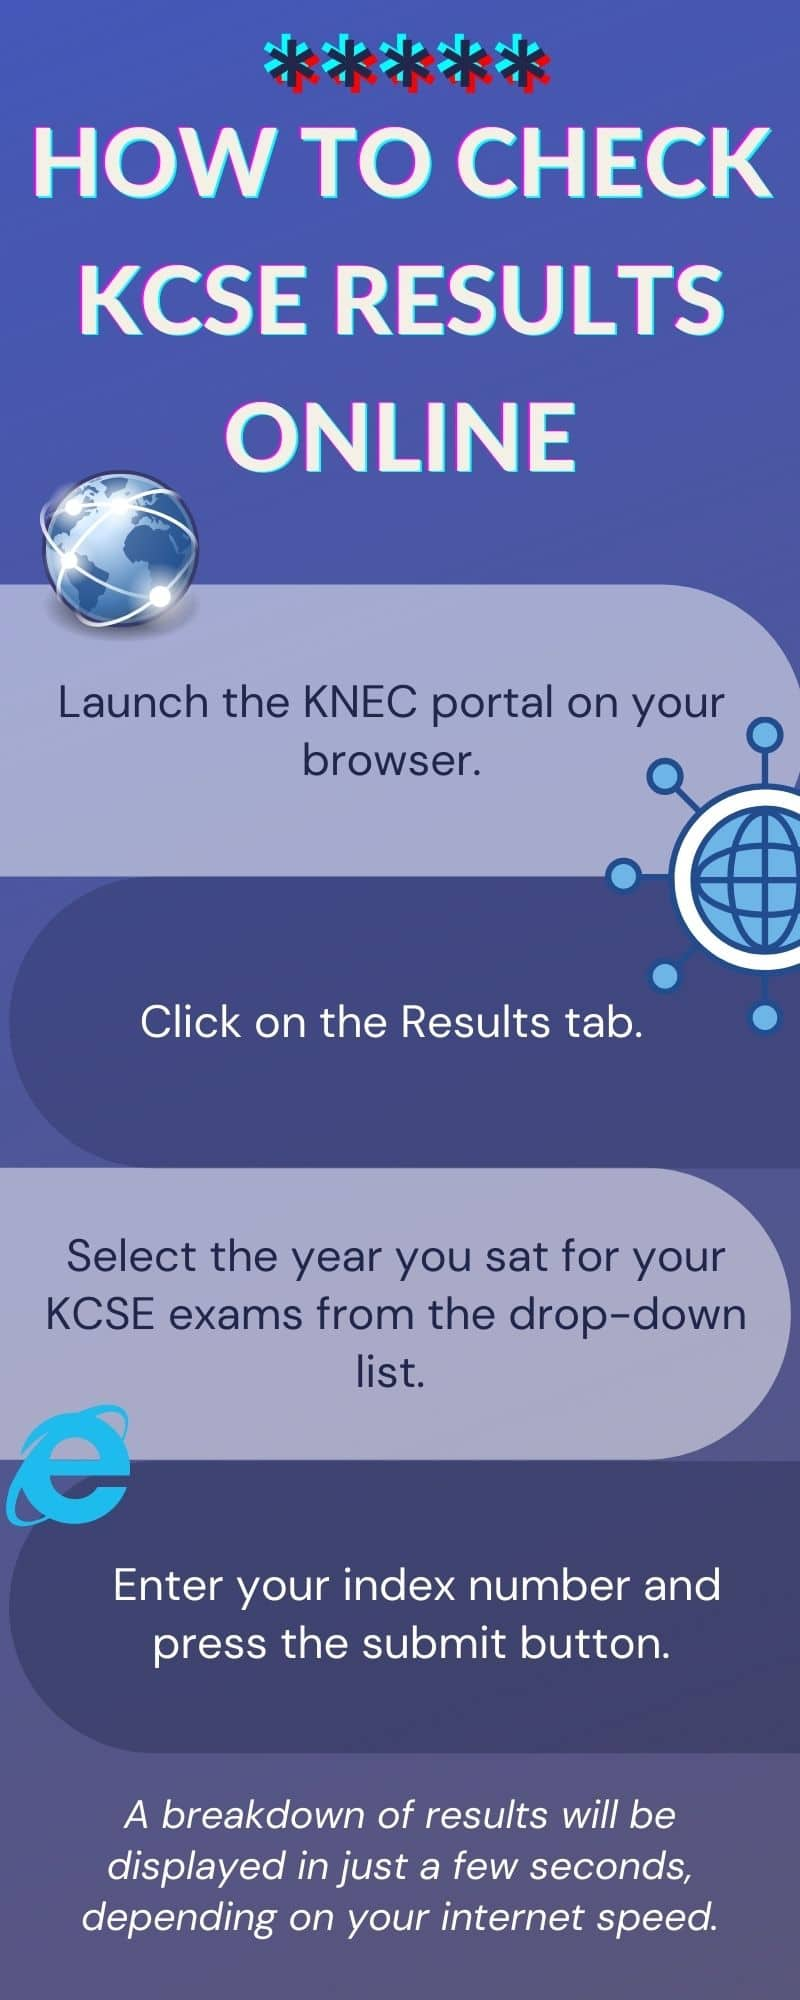 How to check KCSE results online and vis SMS